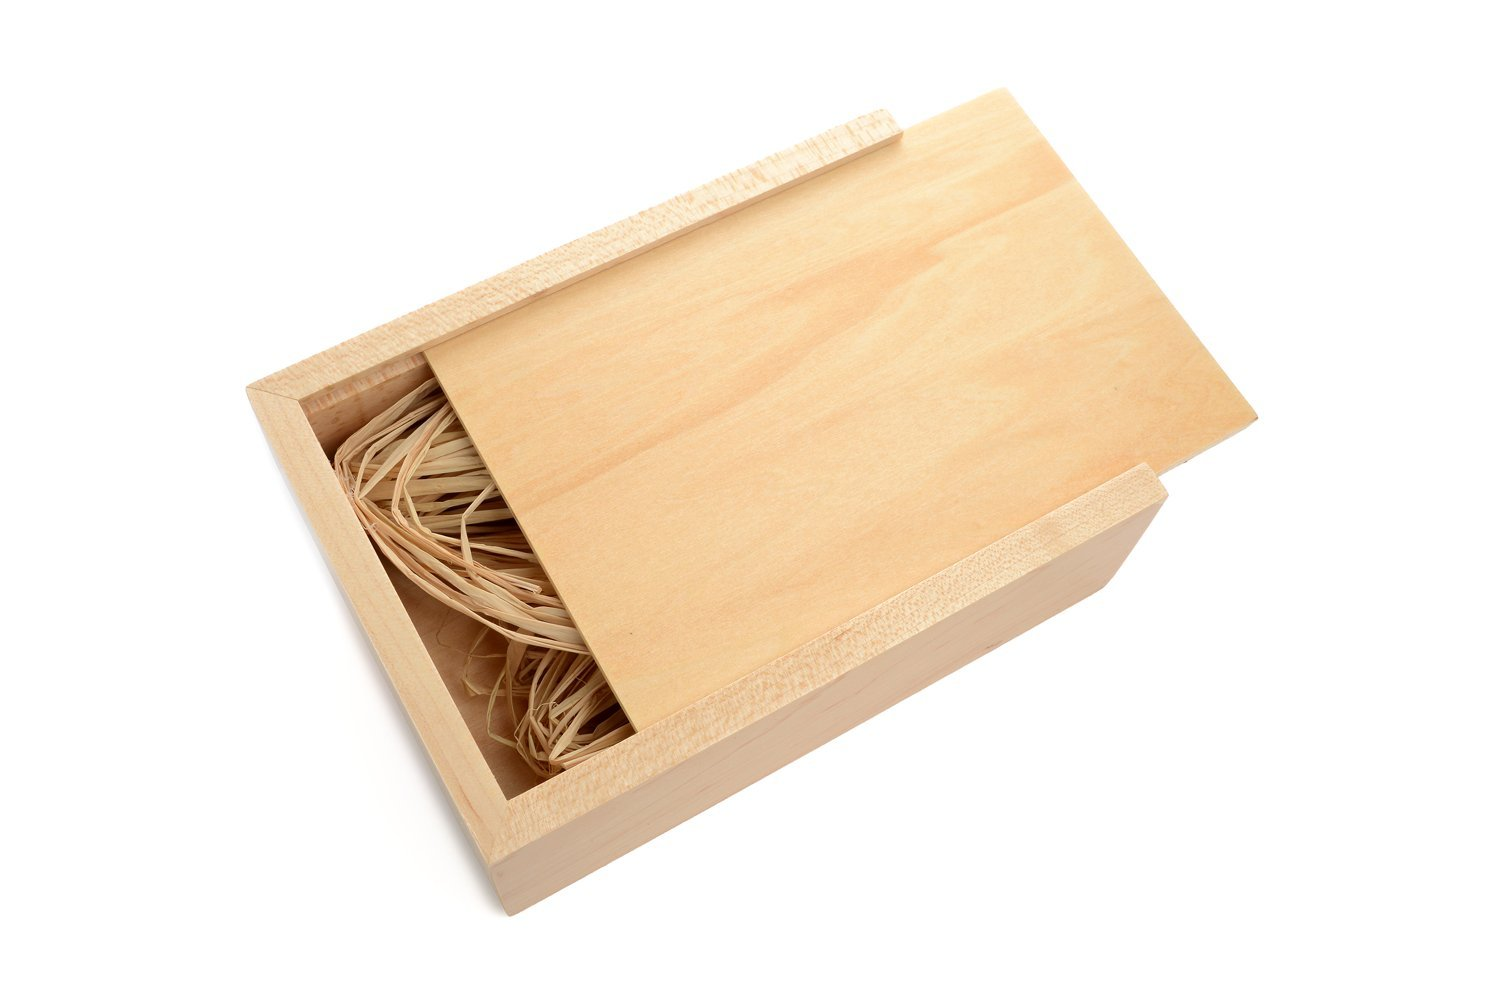 Maple 4 x 6 Photo Box - Holds up to 125 Prints - Filled with Raffia Grass